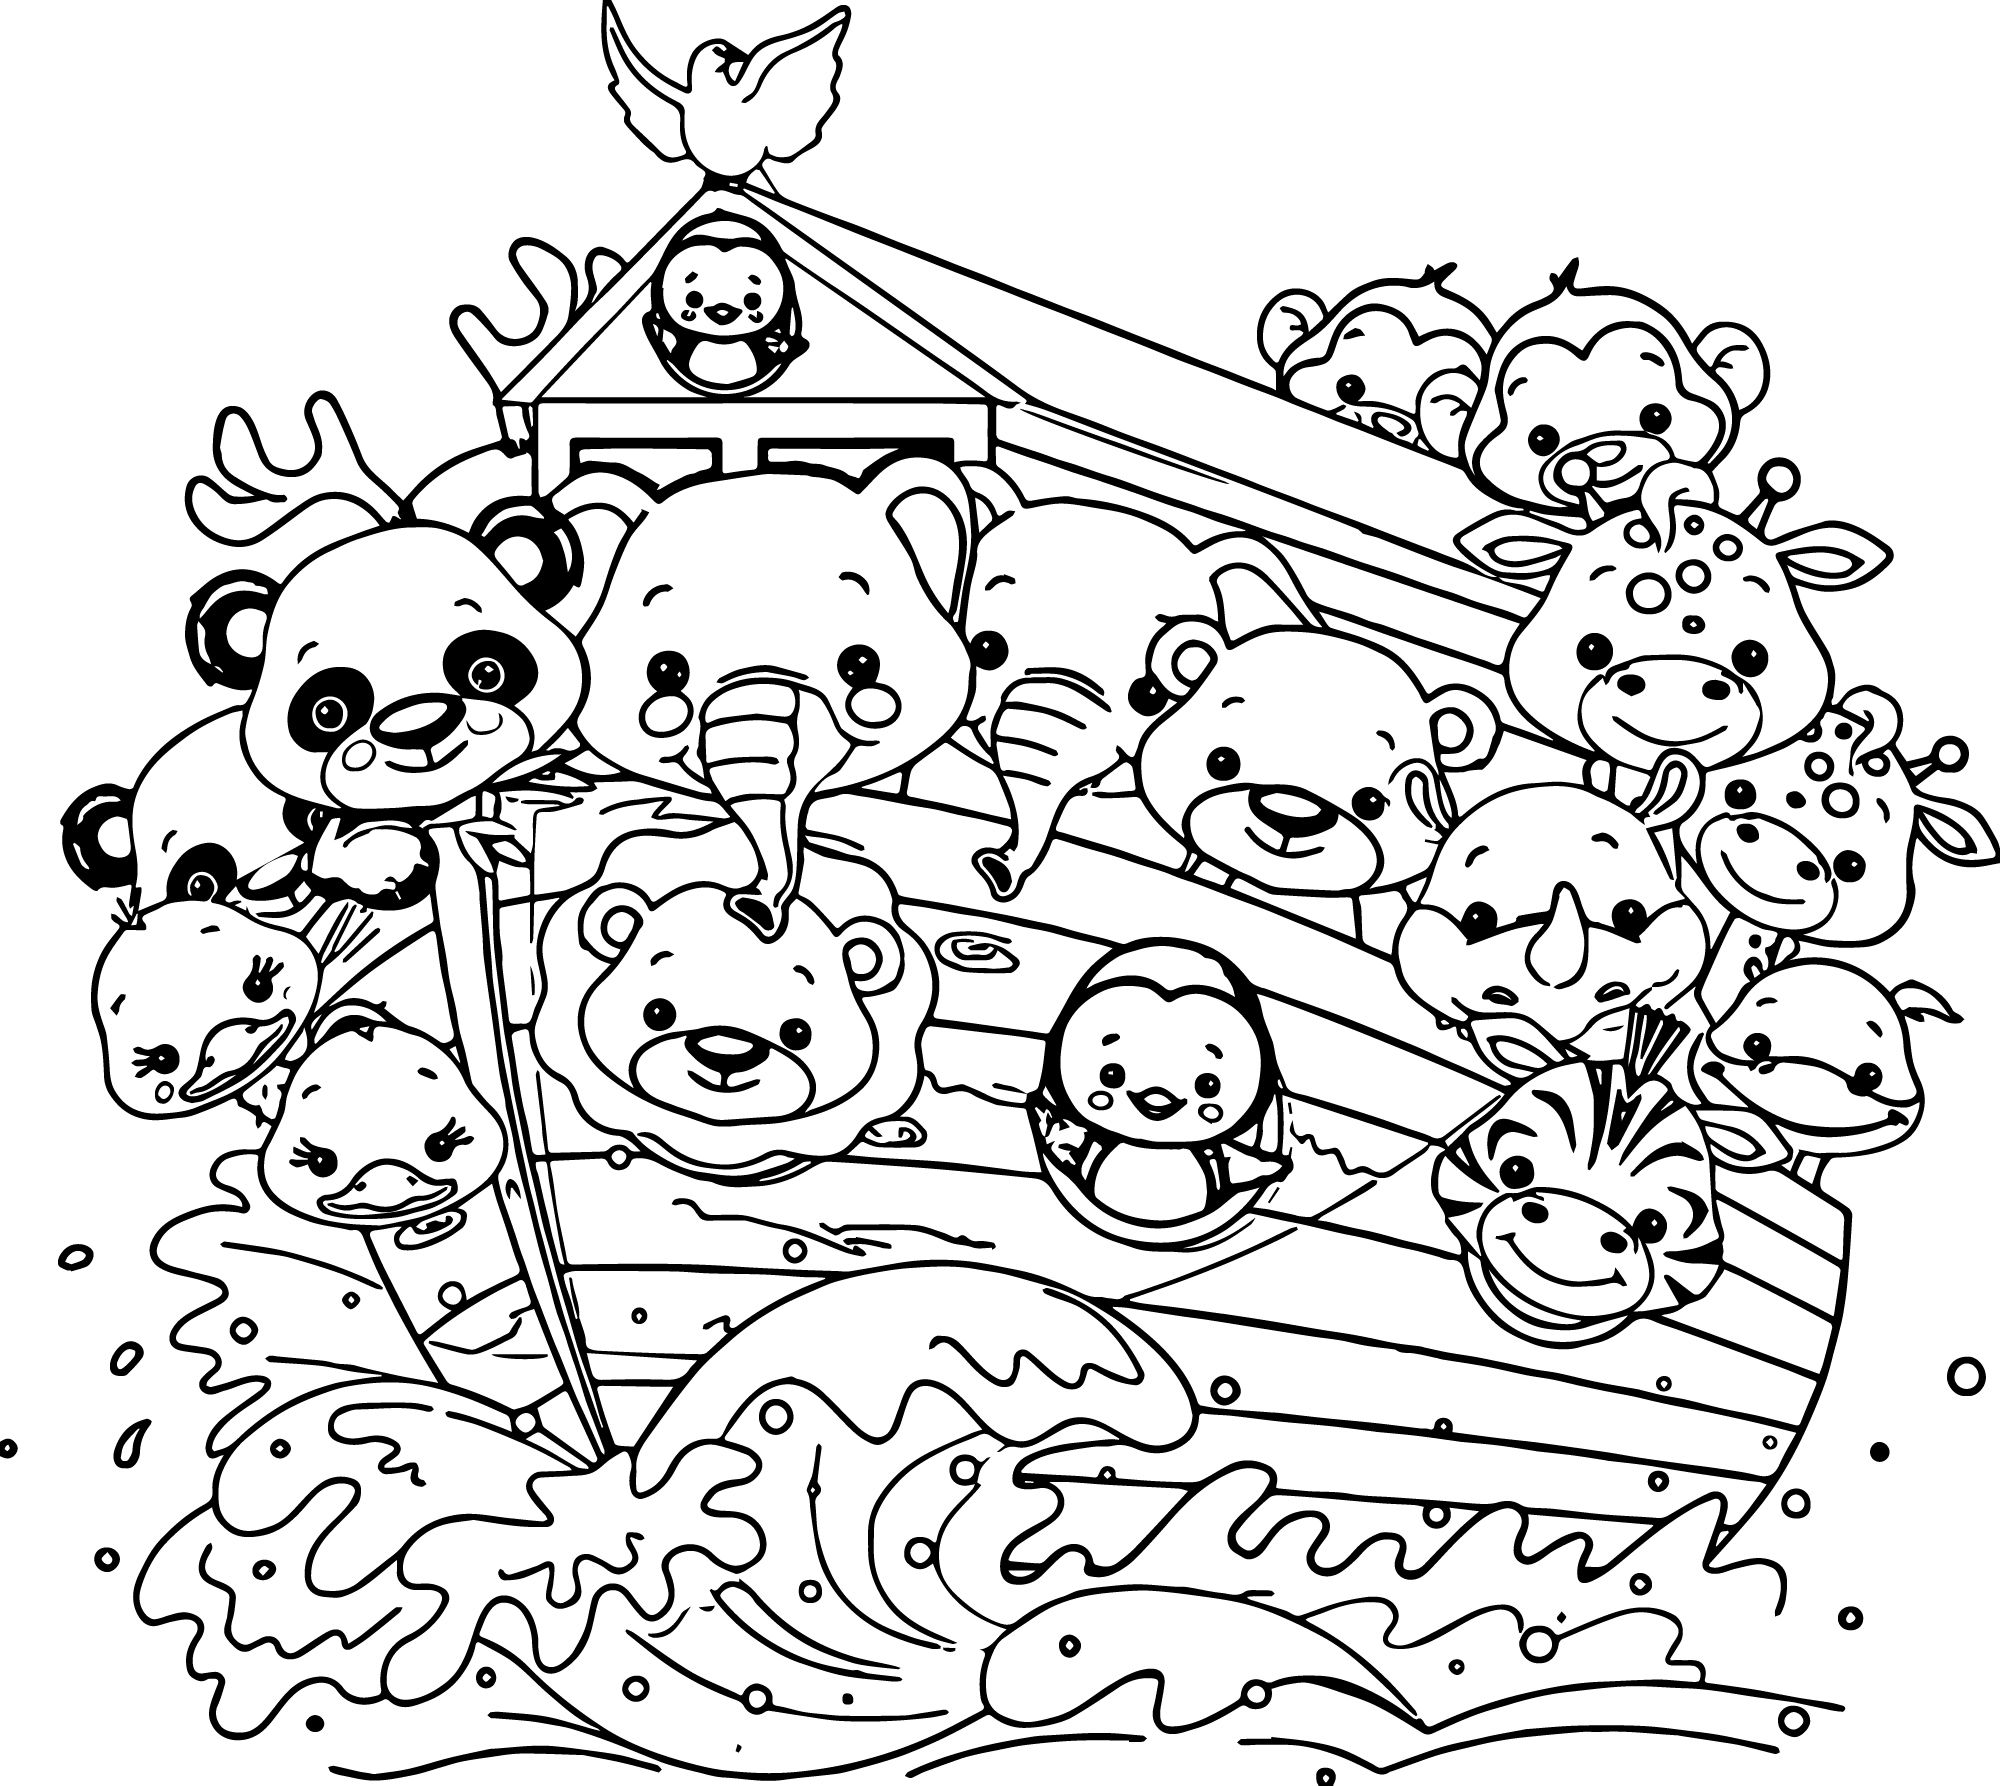 noah and the ark coloring page noah39s ark cartoon coloring pages cartoon coloring pages page and ark coloring noah the